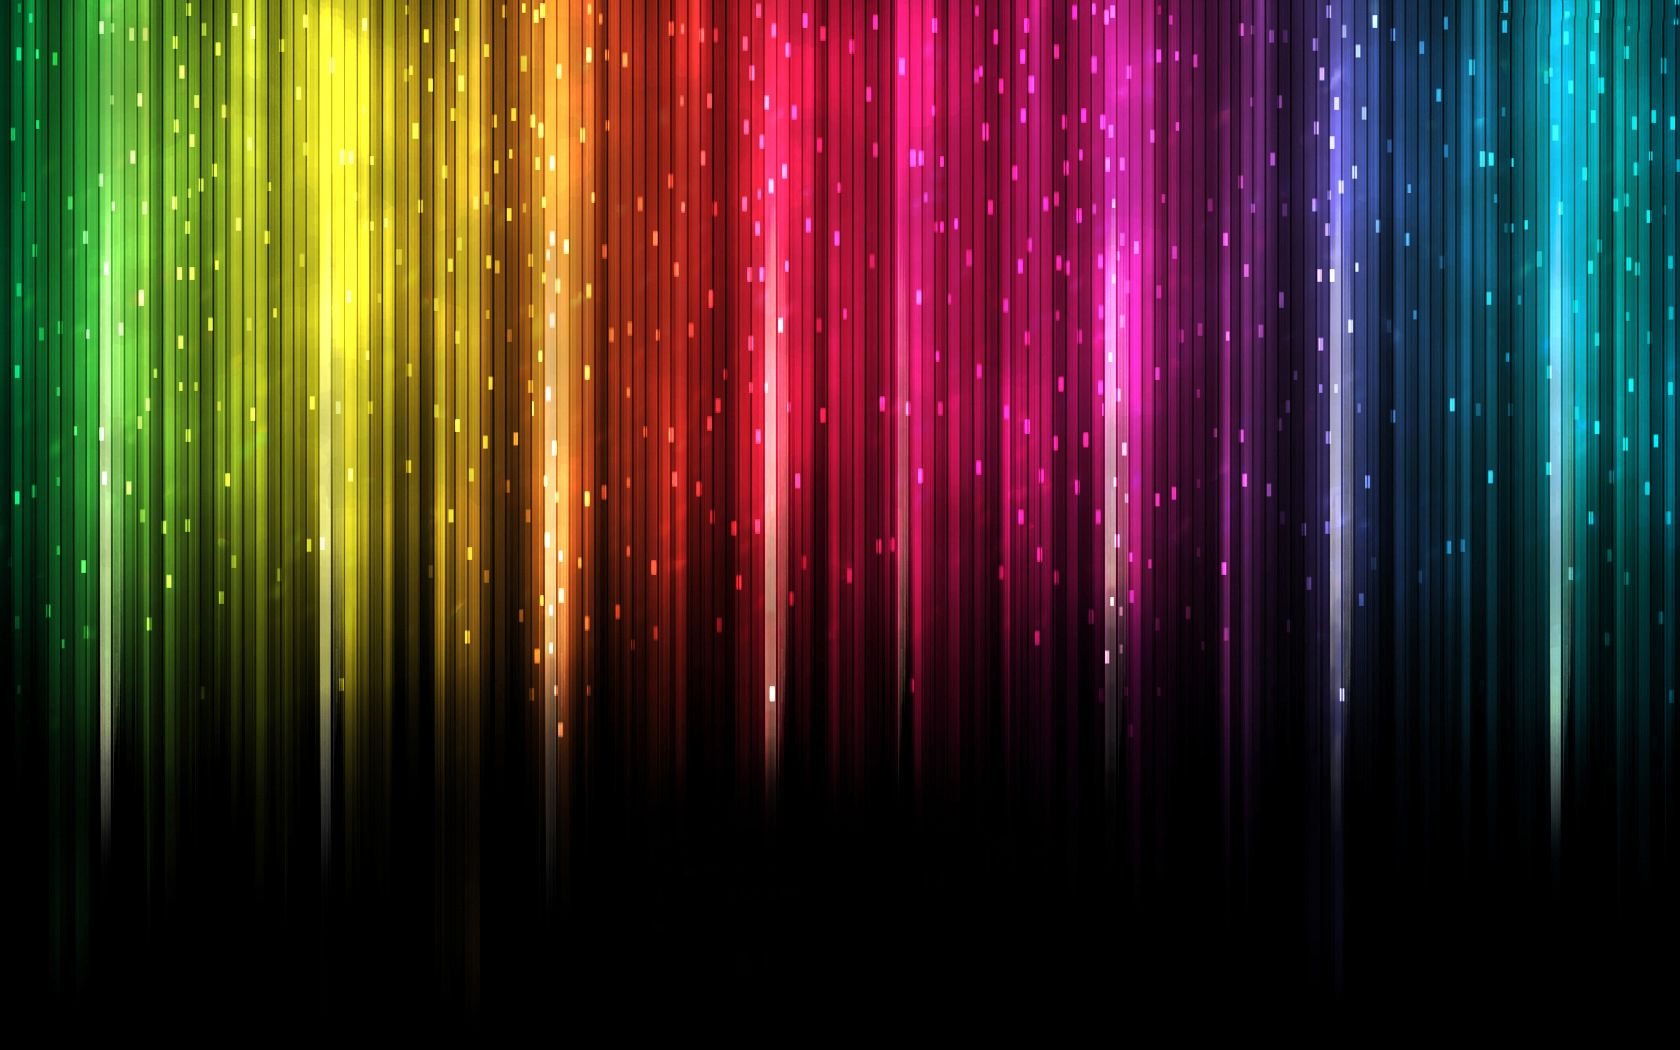 Hd wallpaper colour - Rainbow Wallpaper 4463 1680x1050 Px Hdwallsource